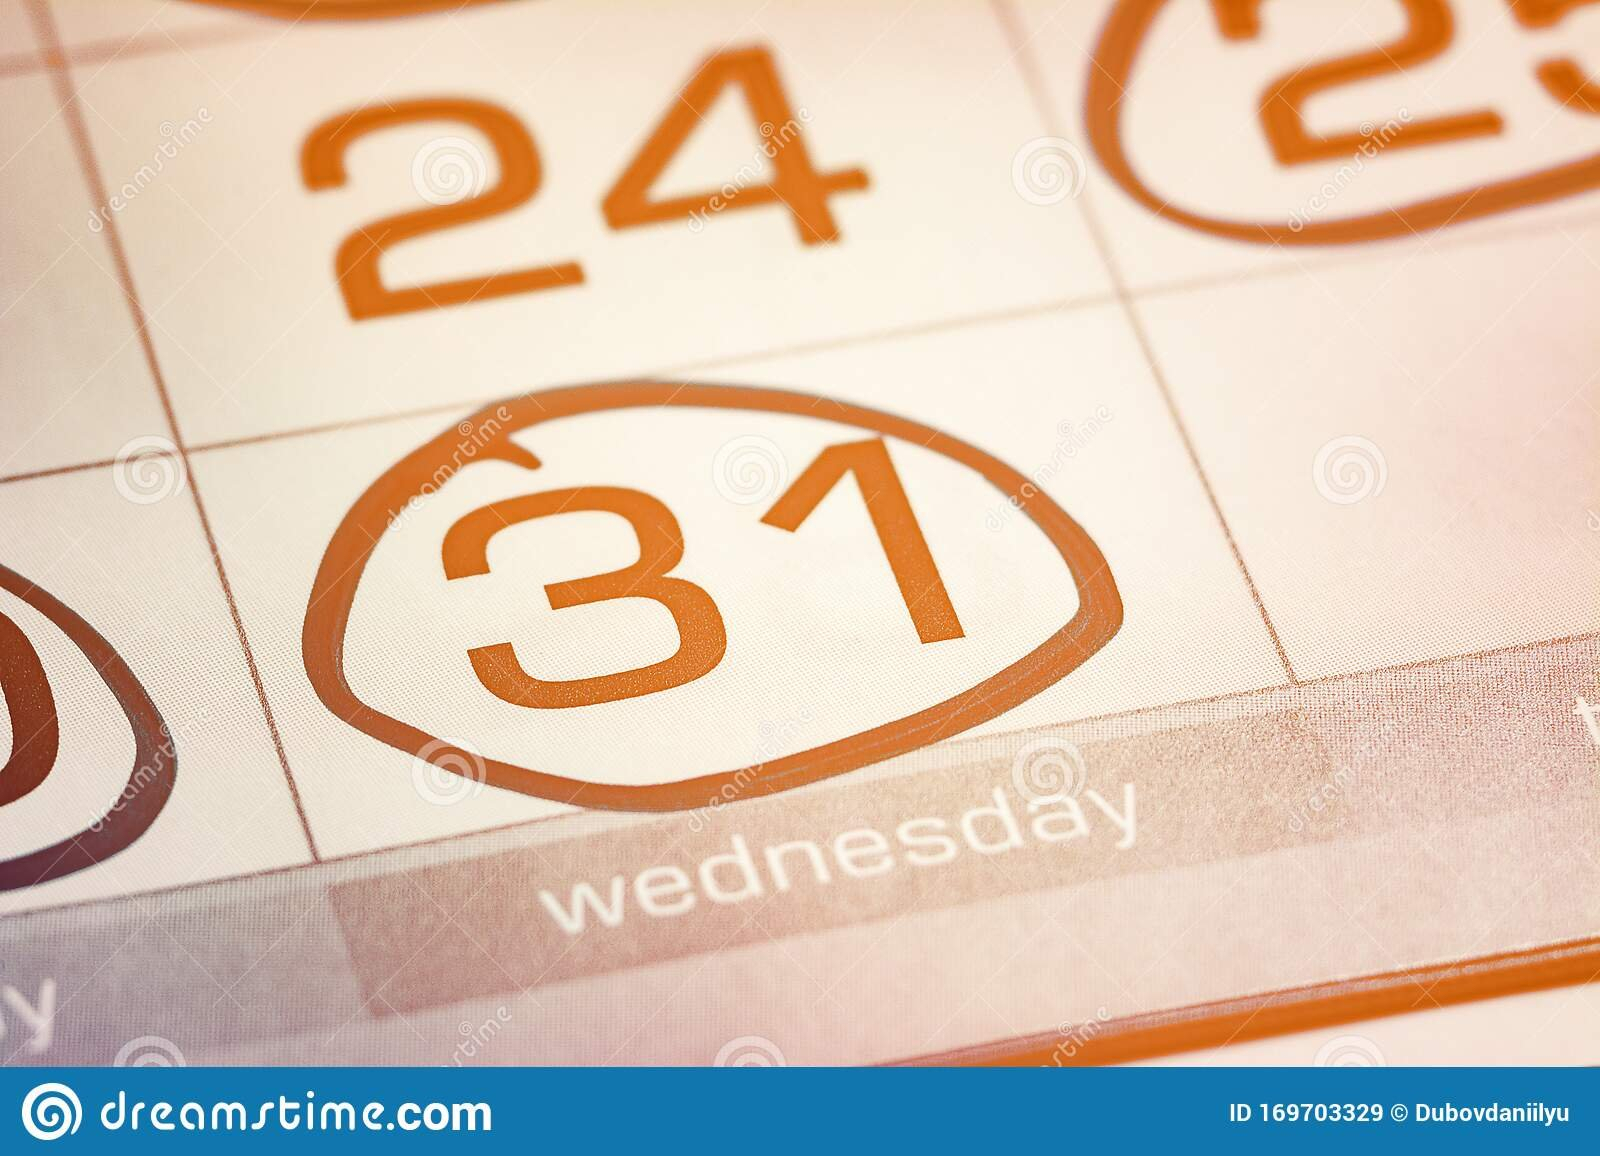 The Thirty First Day Of The Month Highlighted On The Image Of A Calendar With 2Nd Of Month Highlighted